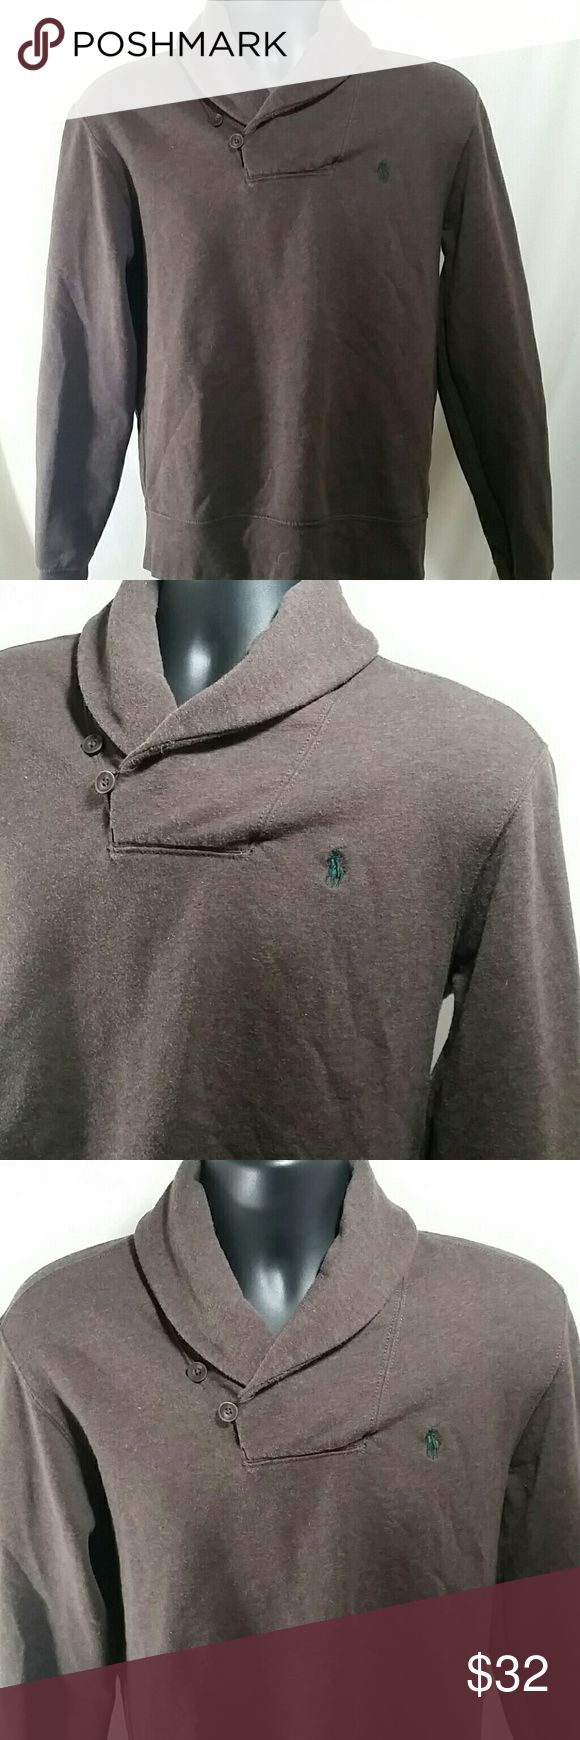 POLO BY RALPH LAUREN Shawl Collar Sweater Size M Handsome POLO BY RALPH LAUREN brown Shawl collar Sweater, with elbow patches.   This Sweater is a size Medium.   This POLO BY RALPH LAUREN Shawl Collar Sweater is in excellent condition. Polo by Ralph Lauren Sweaters